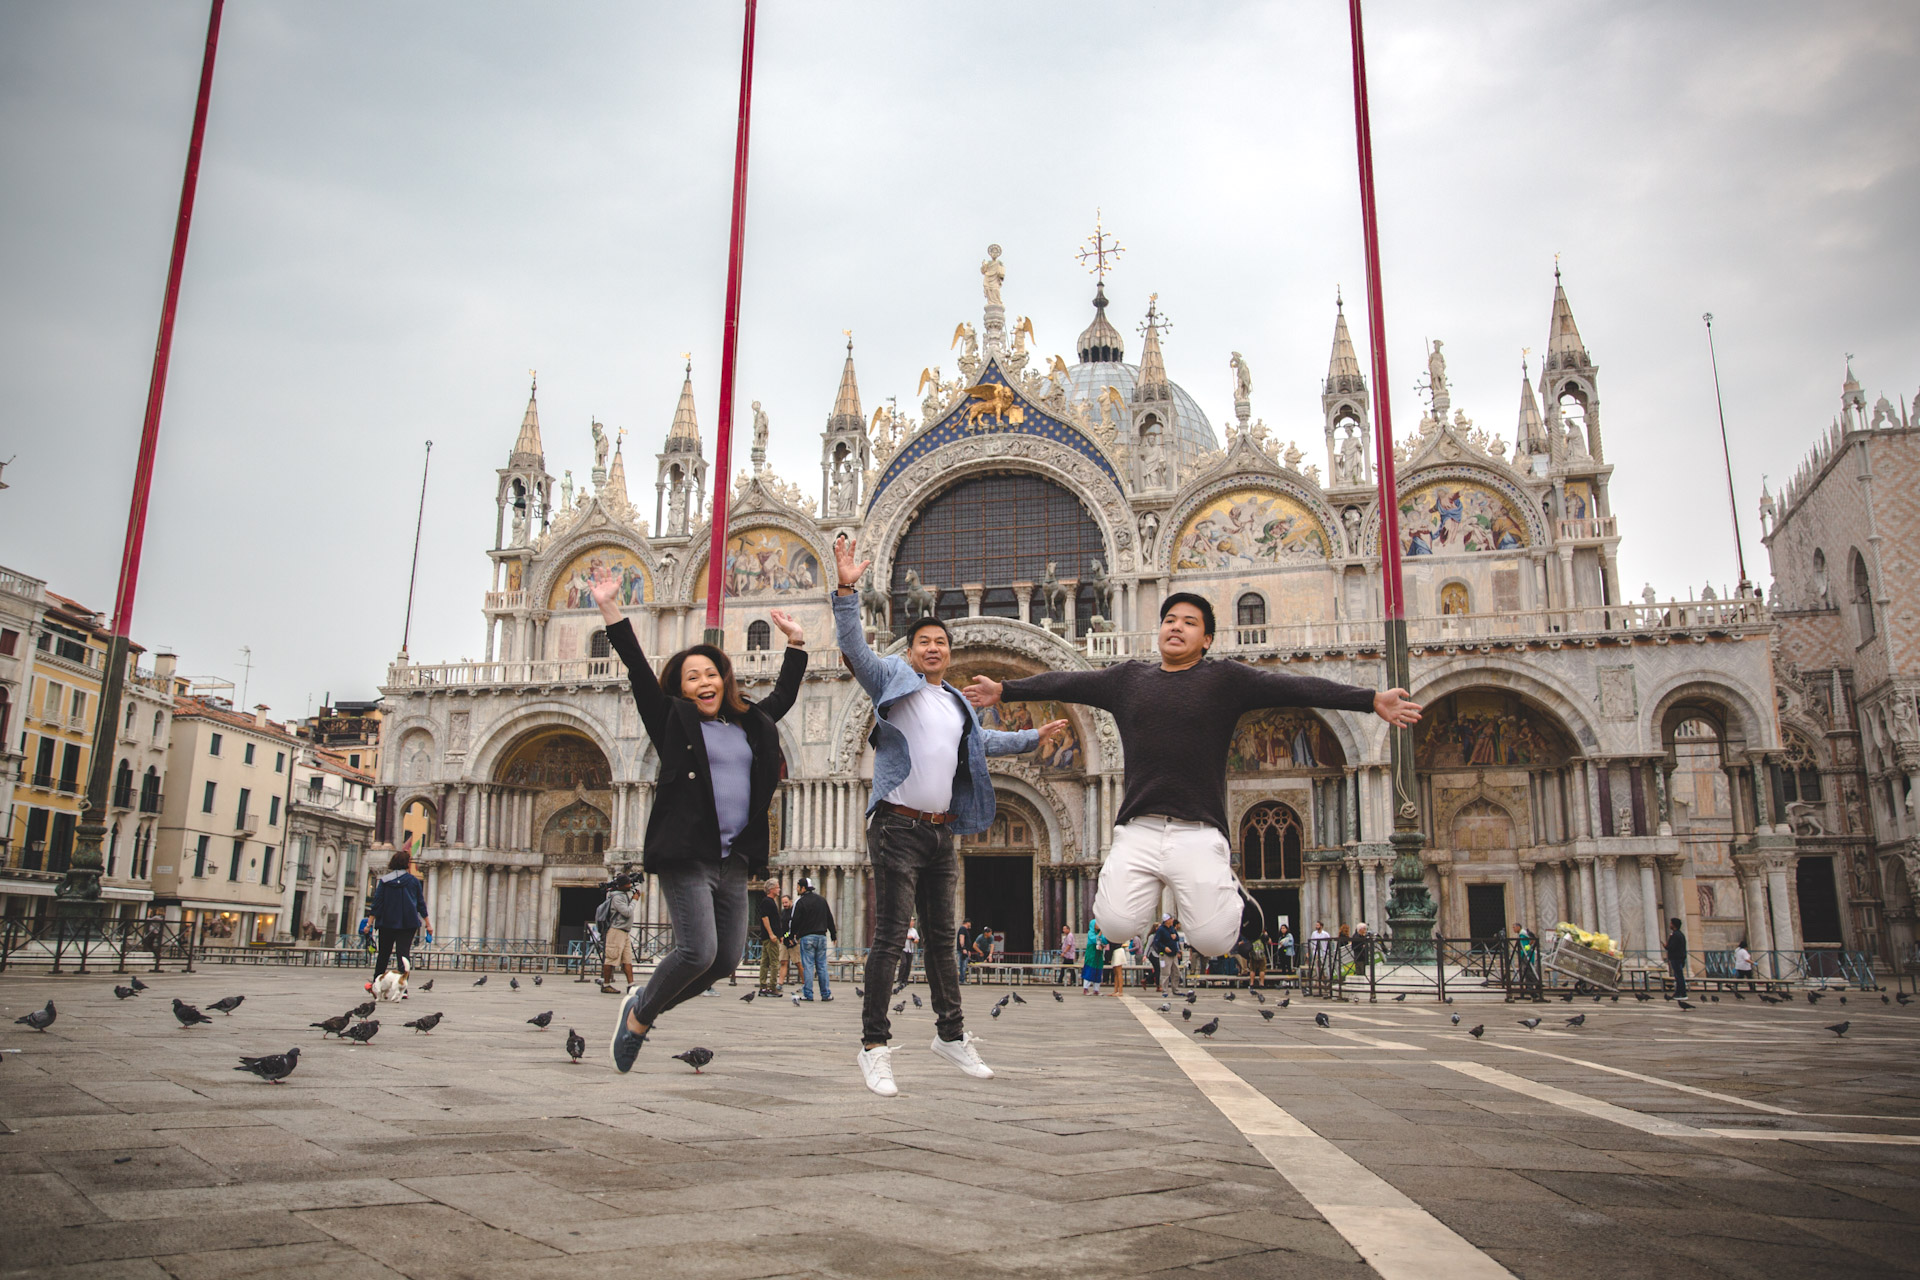 Jo Anne-family-portrait-photo-shooting-sunrise-Piazza-San-Marco-Venezia-Venice